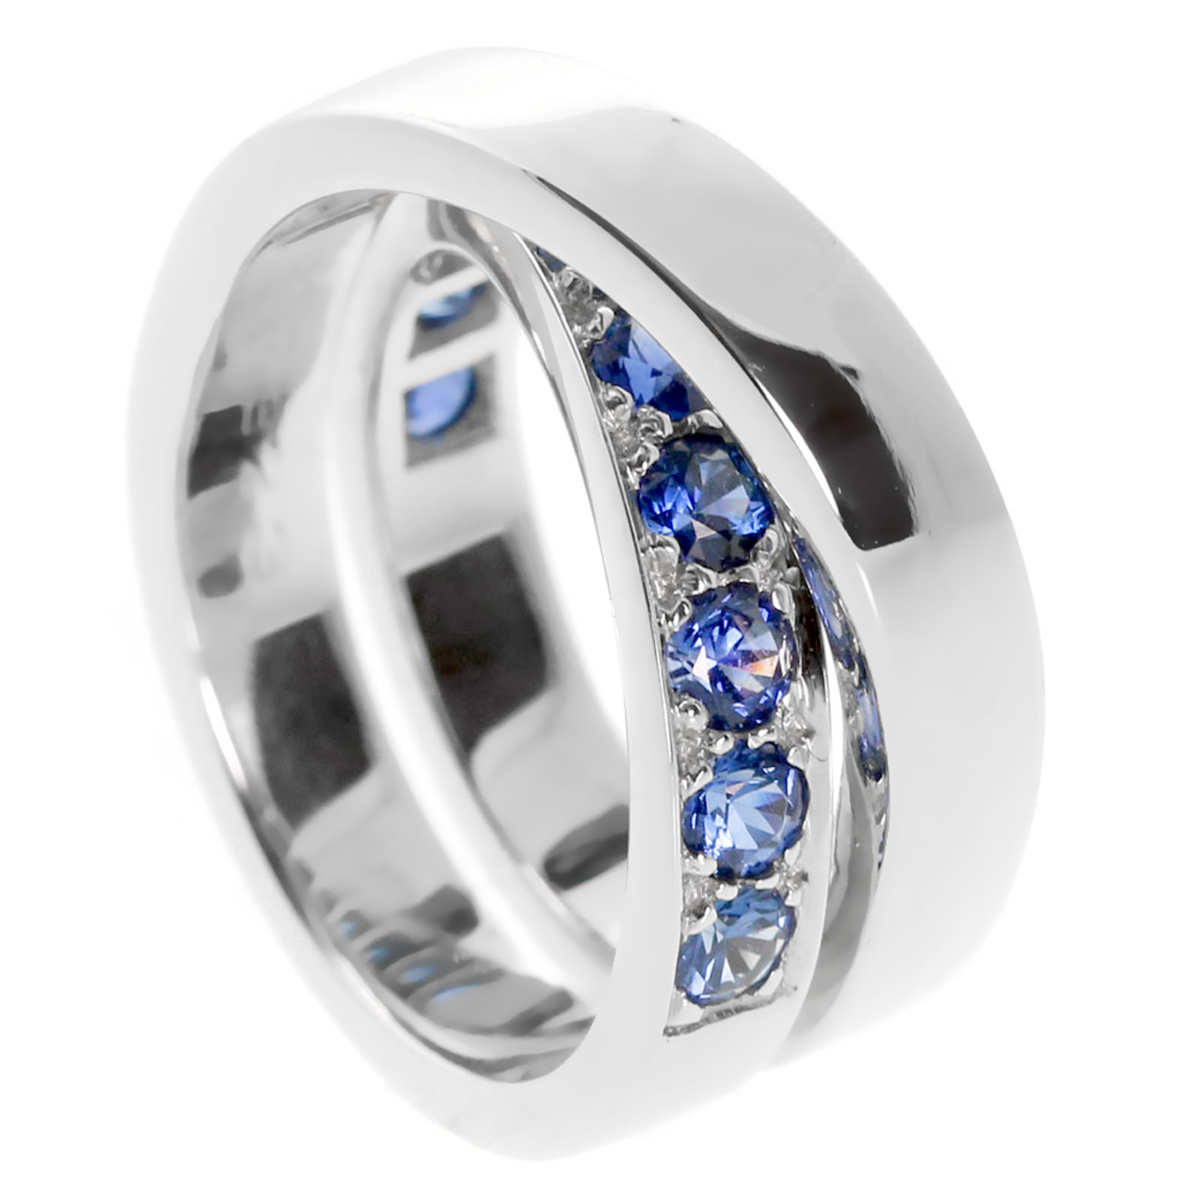 Cartier Sapphire Bypass White Gold Ring - Cartier Jewelry